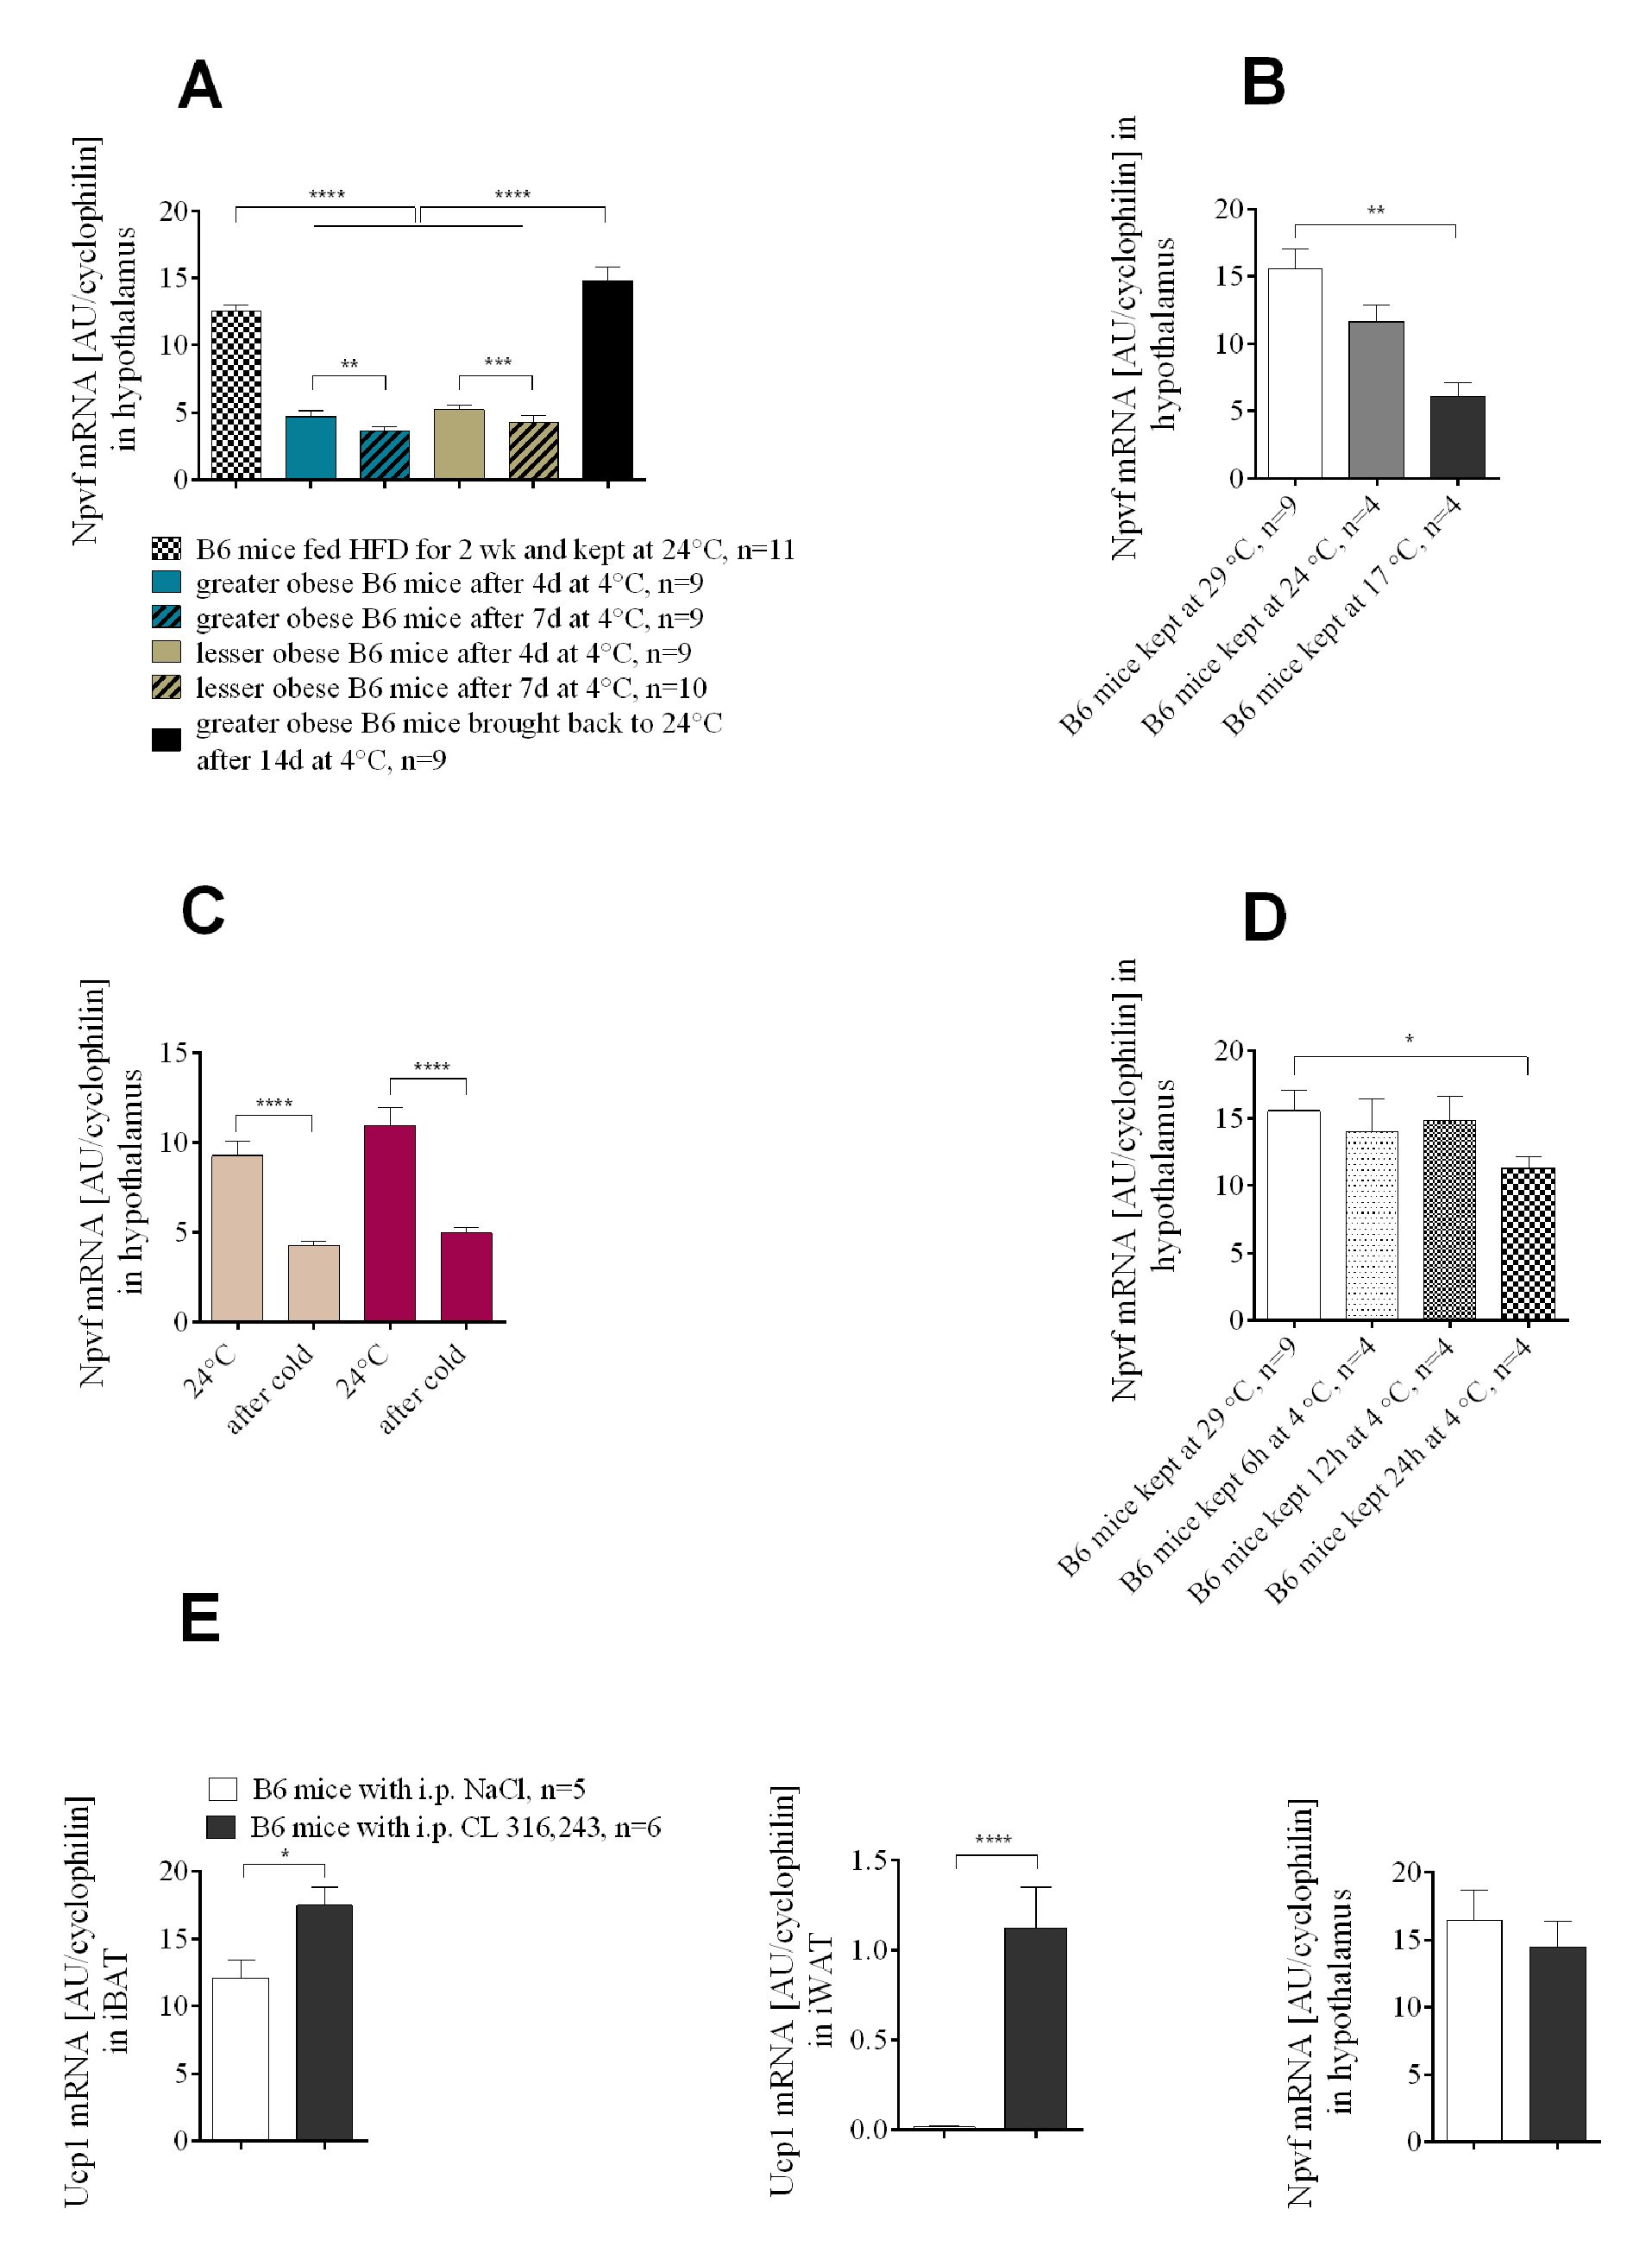 The expression of <i>Npvf</i> in the hypothalamus responds to reduced ambient temperature and time of exposure to the cold, but is not associated with the level of non-shivering thermogenesis in iBAT.